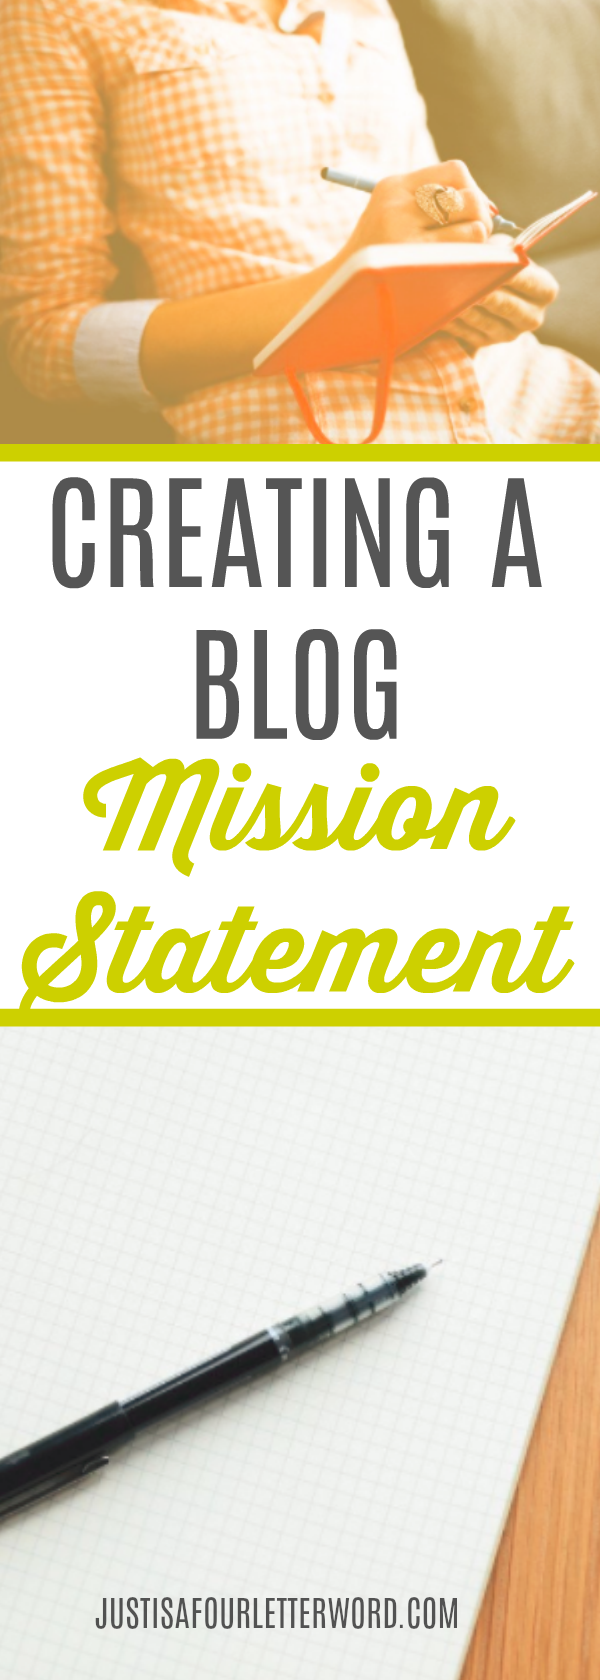 Your mission statement is the foundation of every decision you will make. Once you have that framework in place, you can move forward with confidence no matter what your blog topic is.